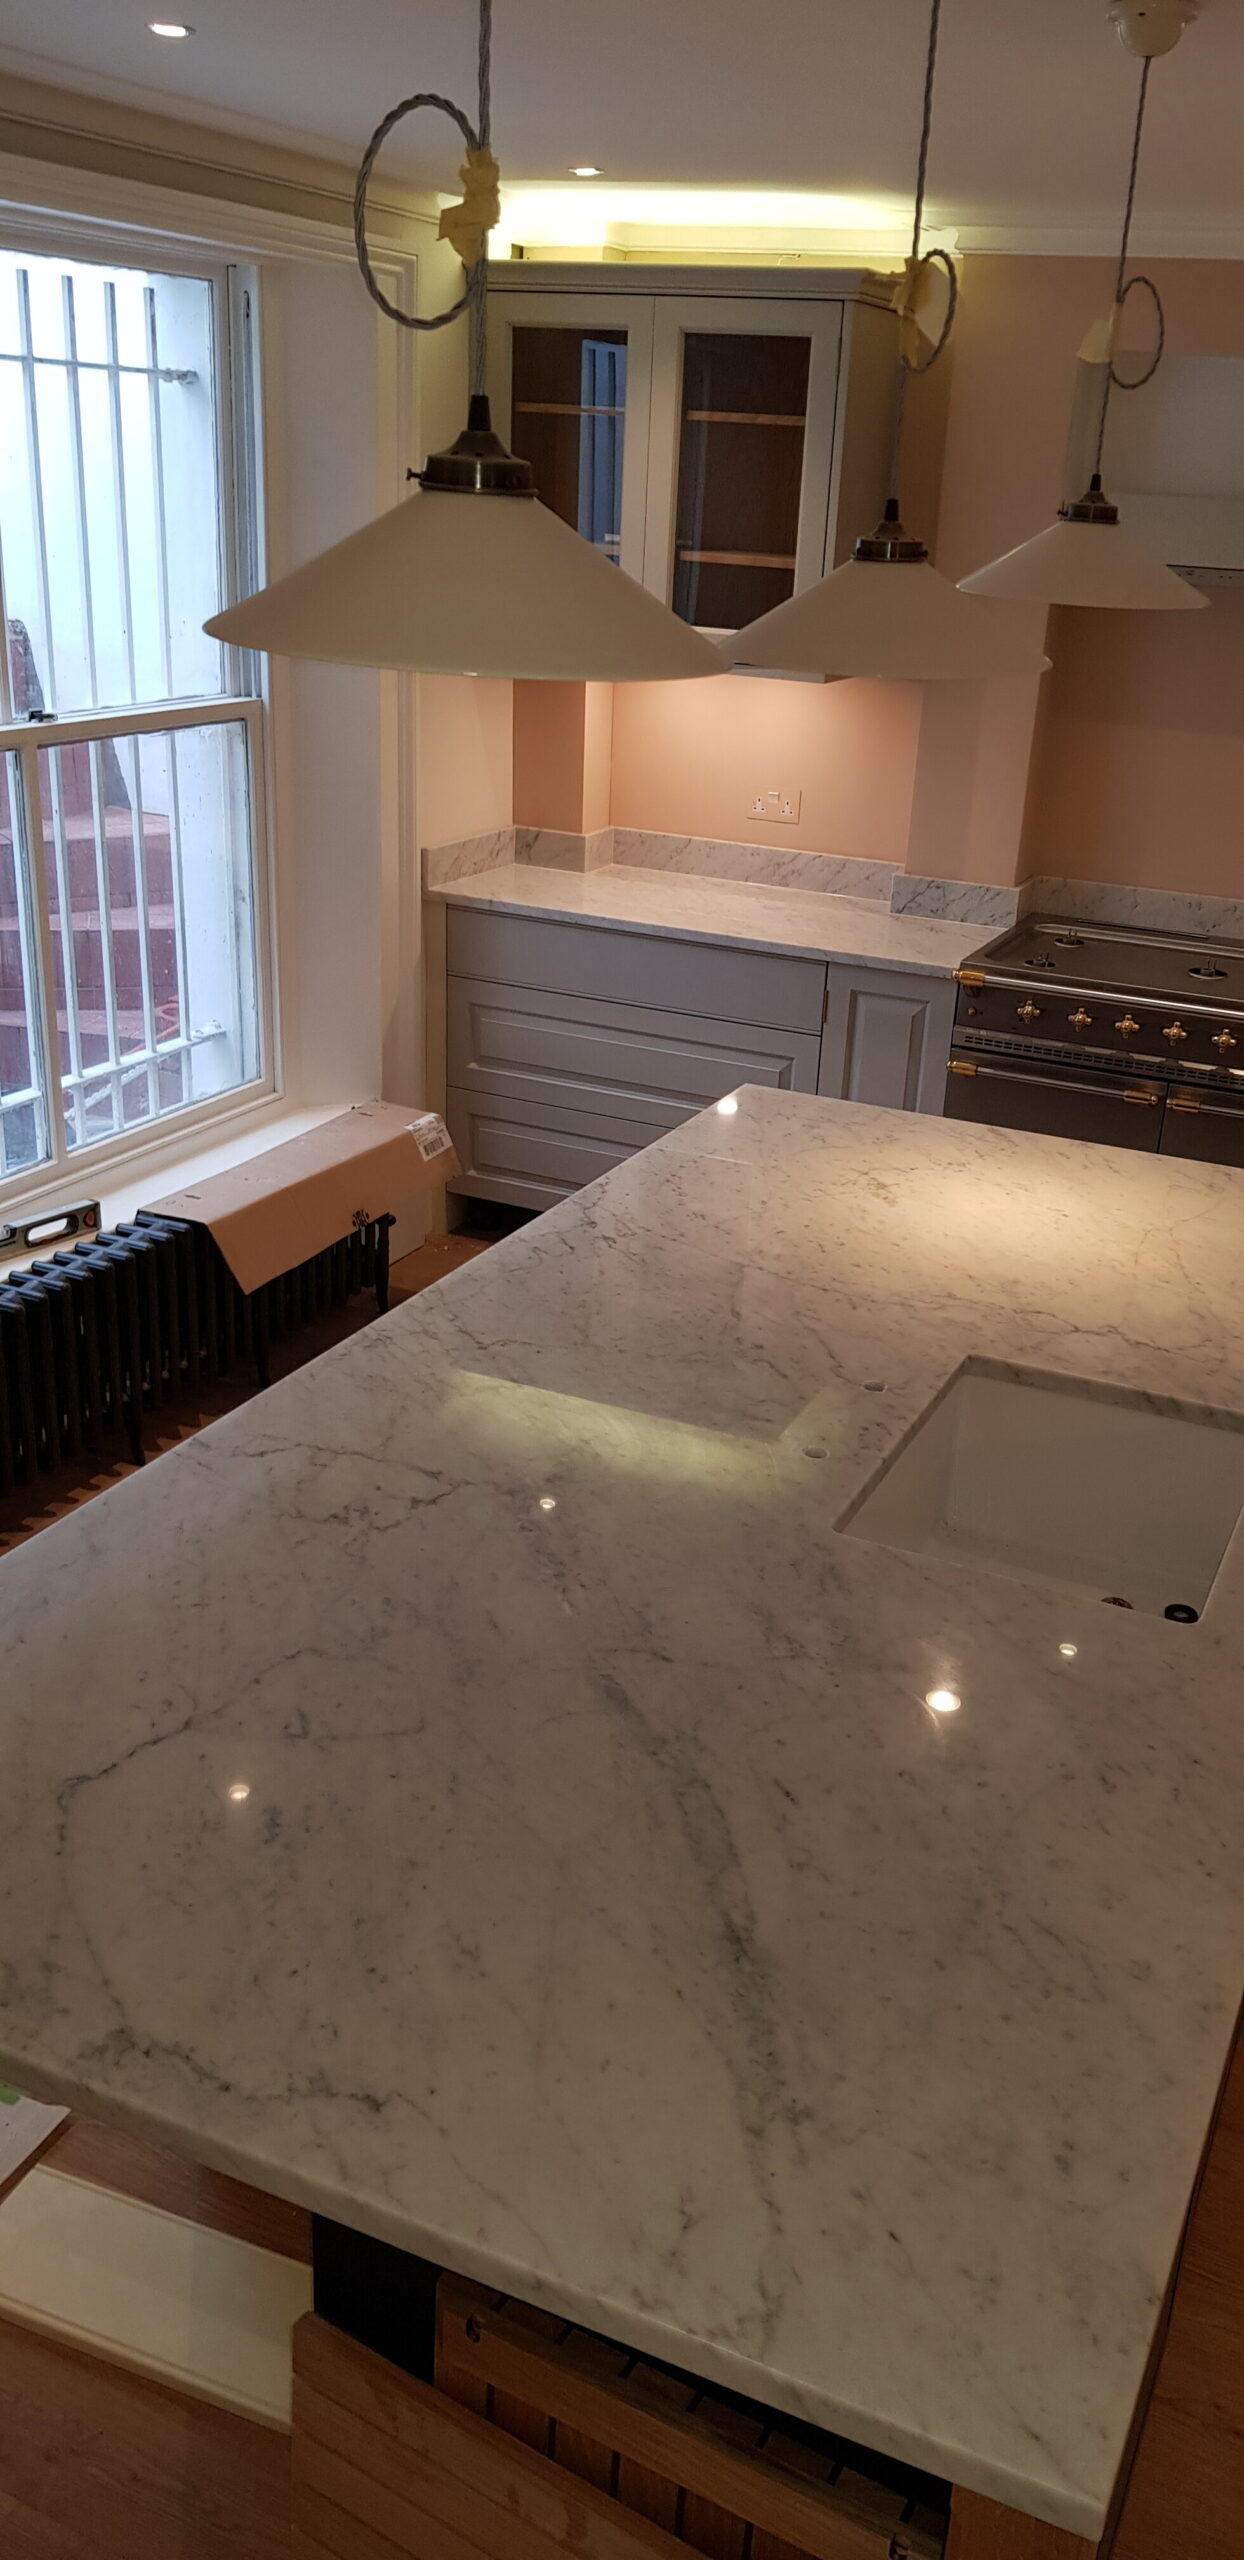 Refurbished kitchen stone worktops